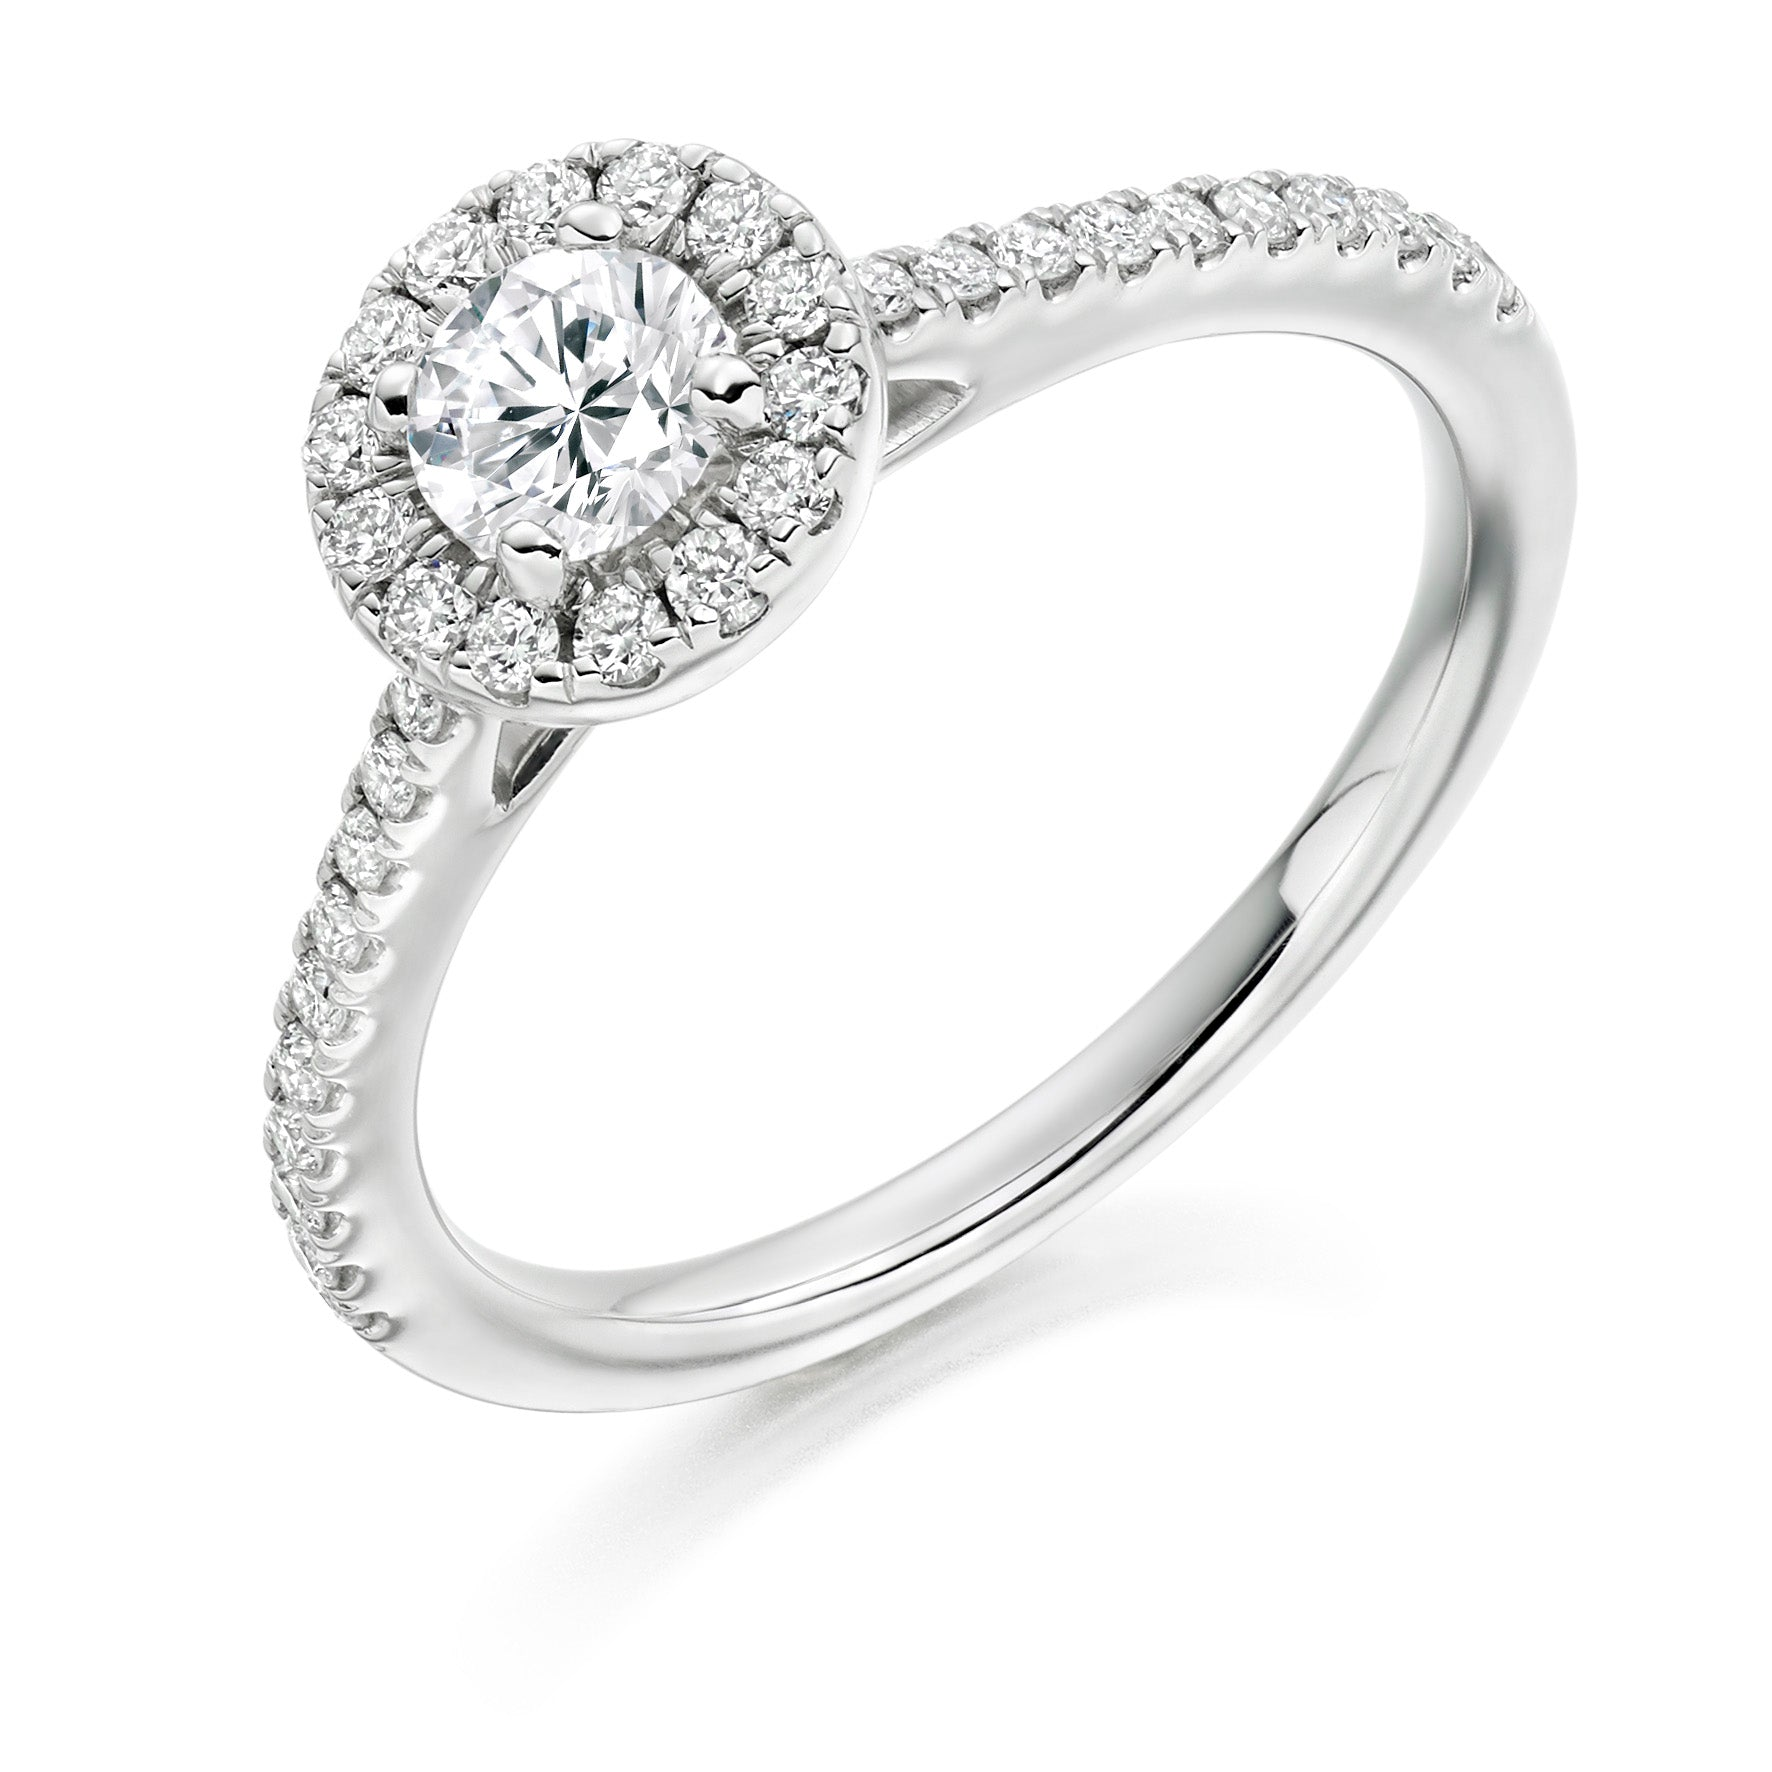 18ct White Gold 0.33ct Round Brilliant Cut Diamond Halo Surround Engagement Ring